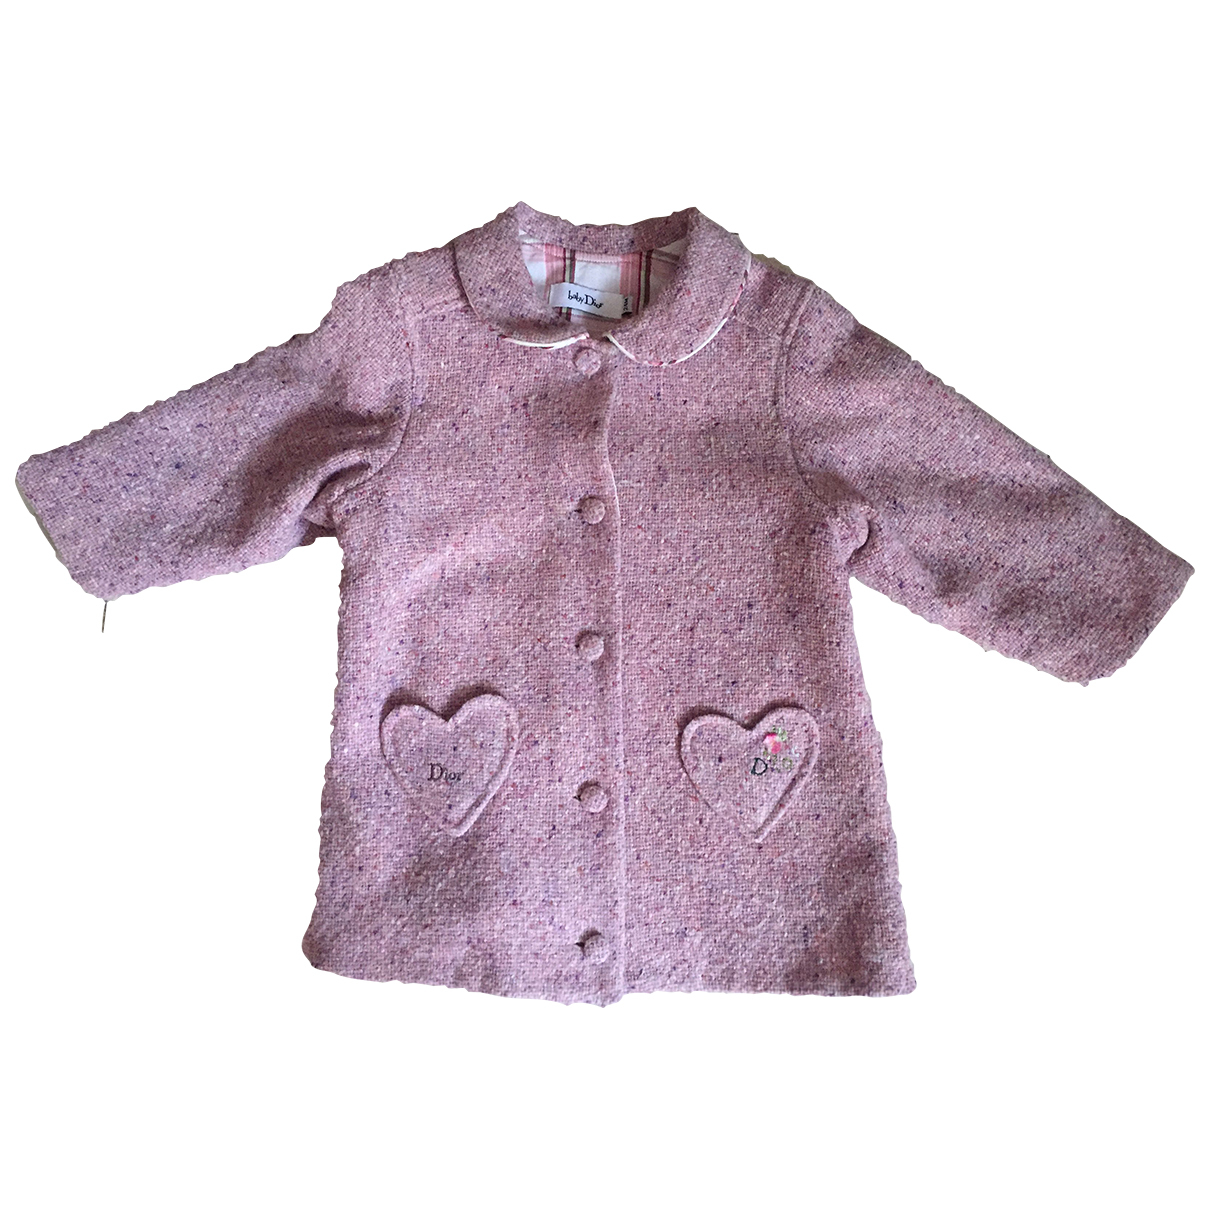 Dior \N Wool jacket & coat for Kids 2 years - up to 86cm FR